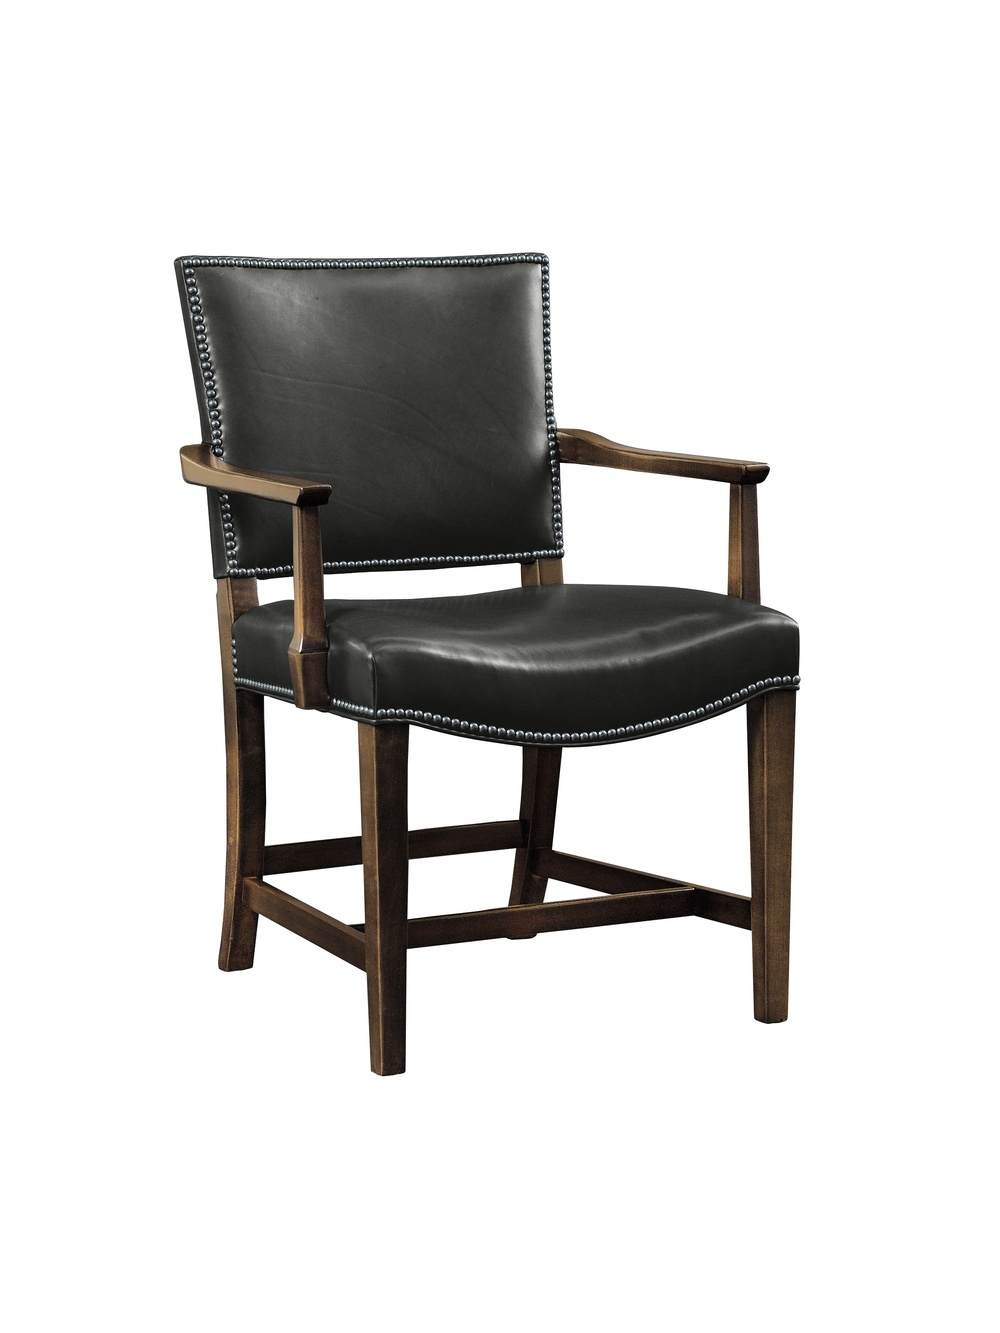 Hickory Chair - Madigan Arm Chair